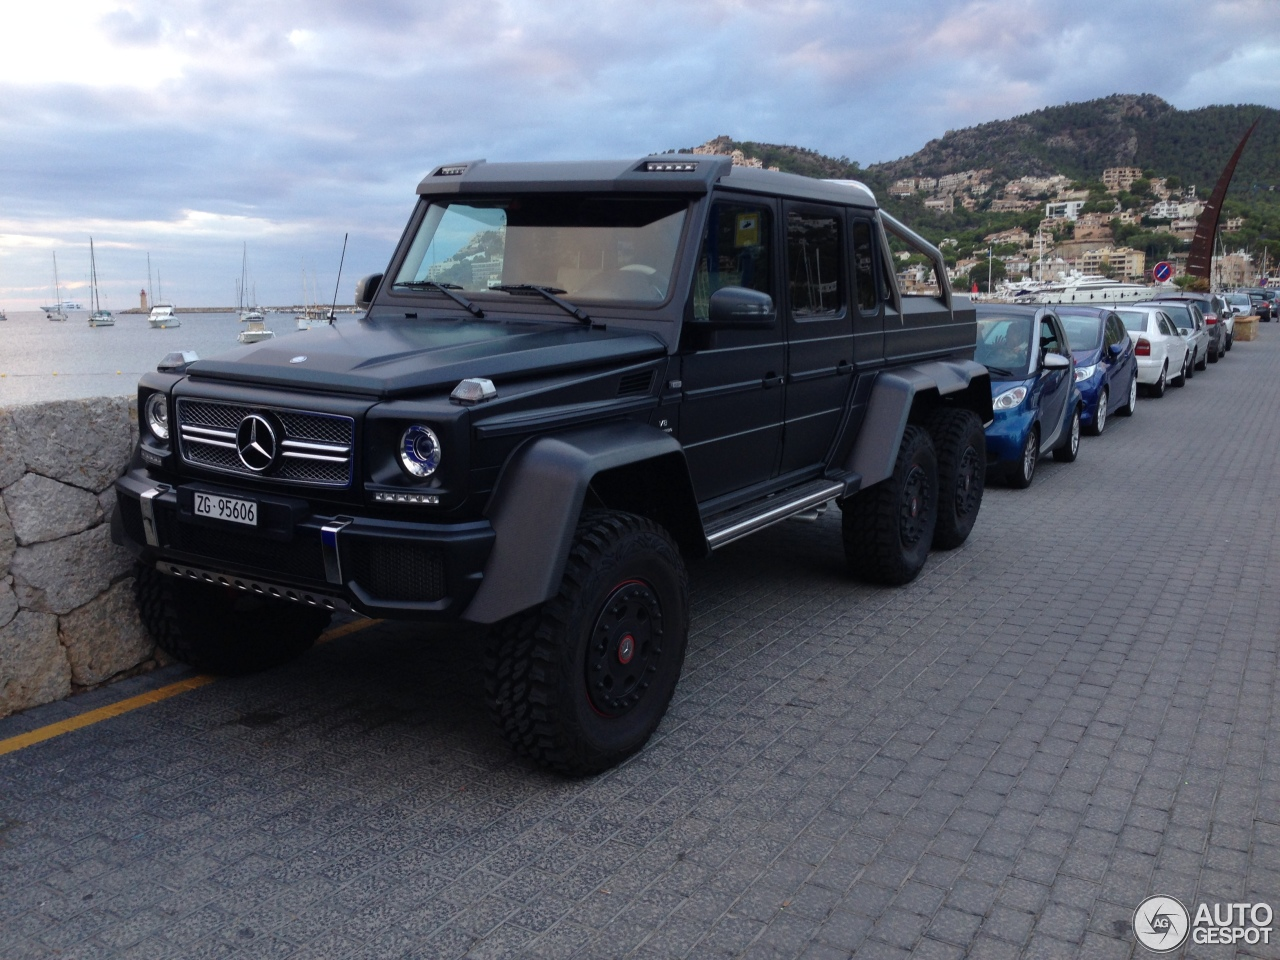 Mercedes benz g 63 amg 6x6 17 october 2014 autogespot for Mercedes benz amg 6x6 price